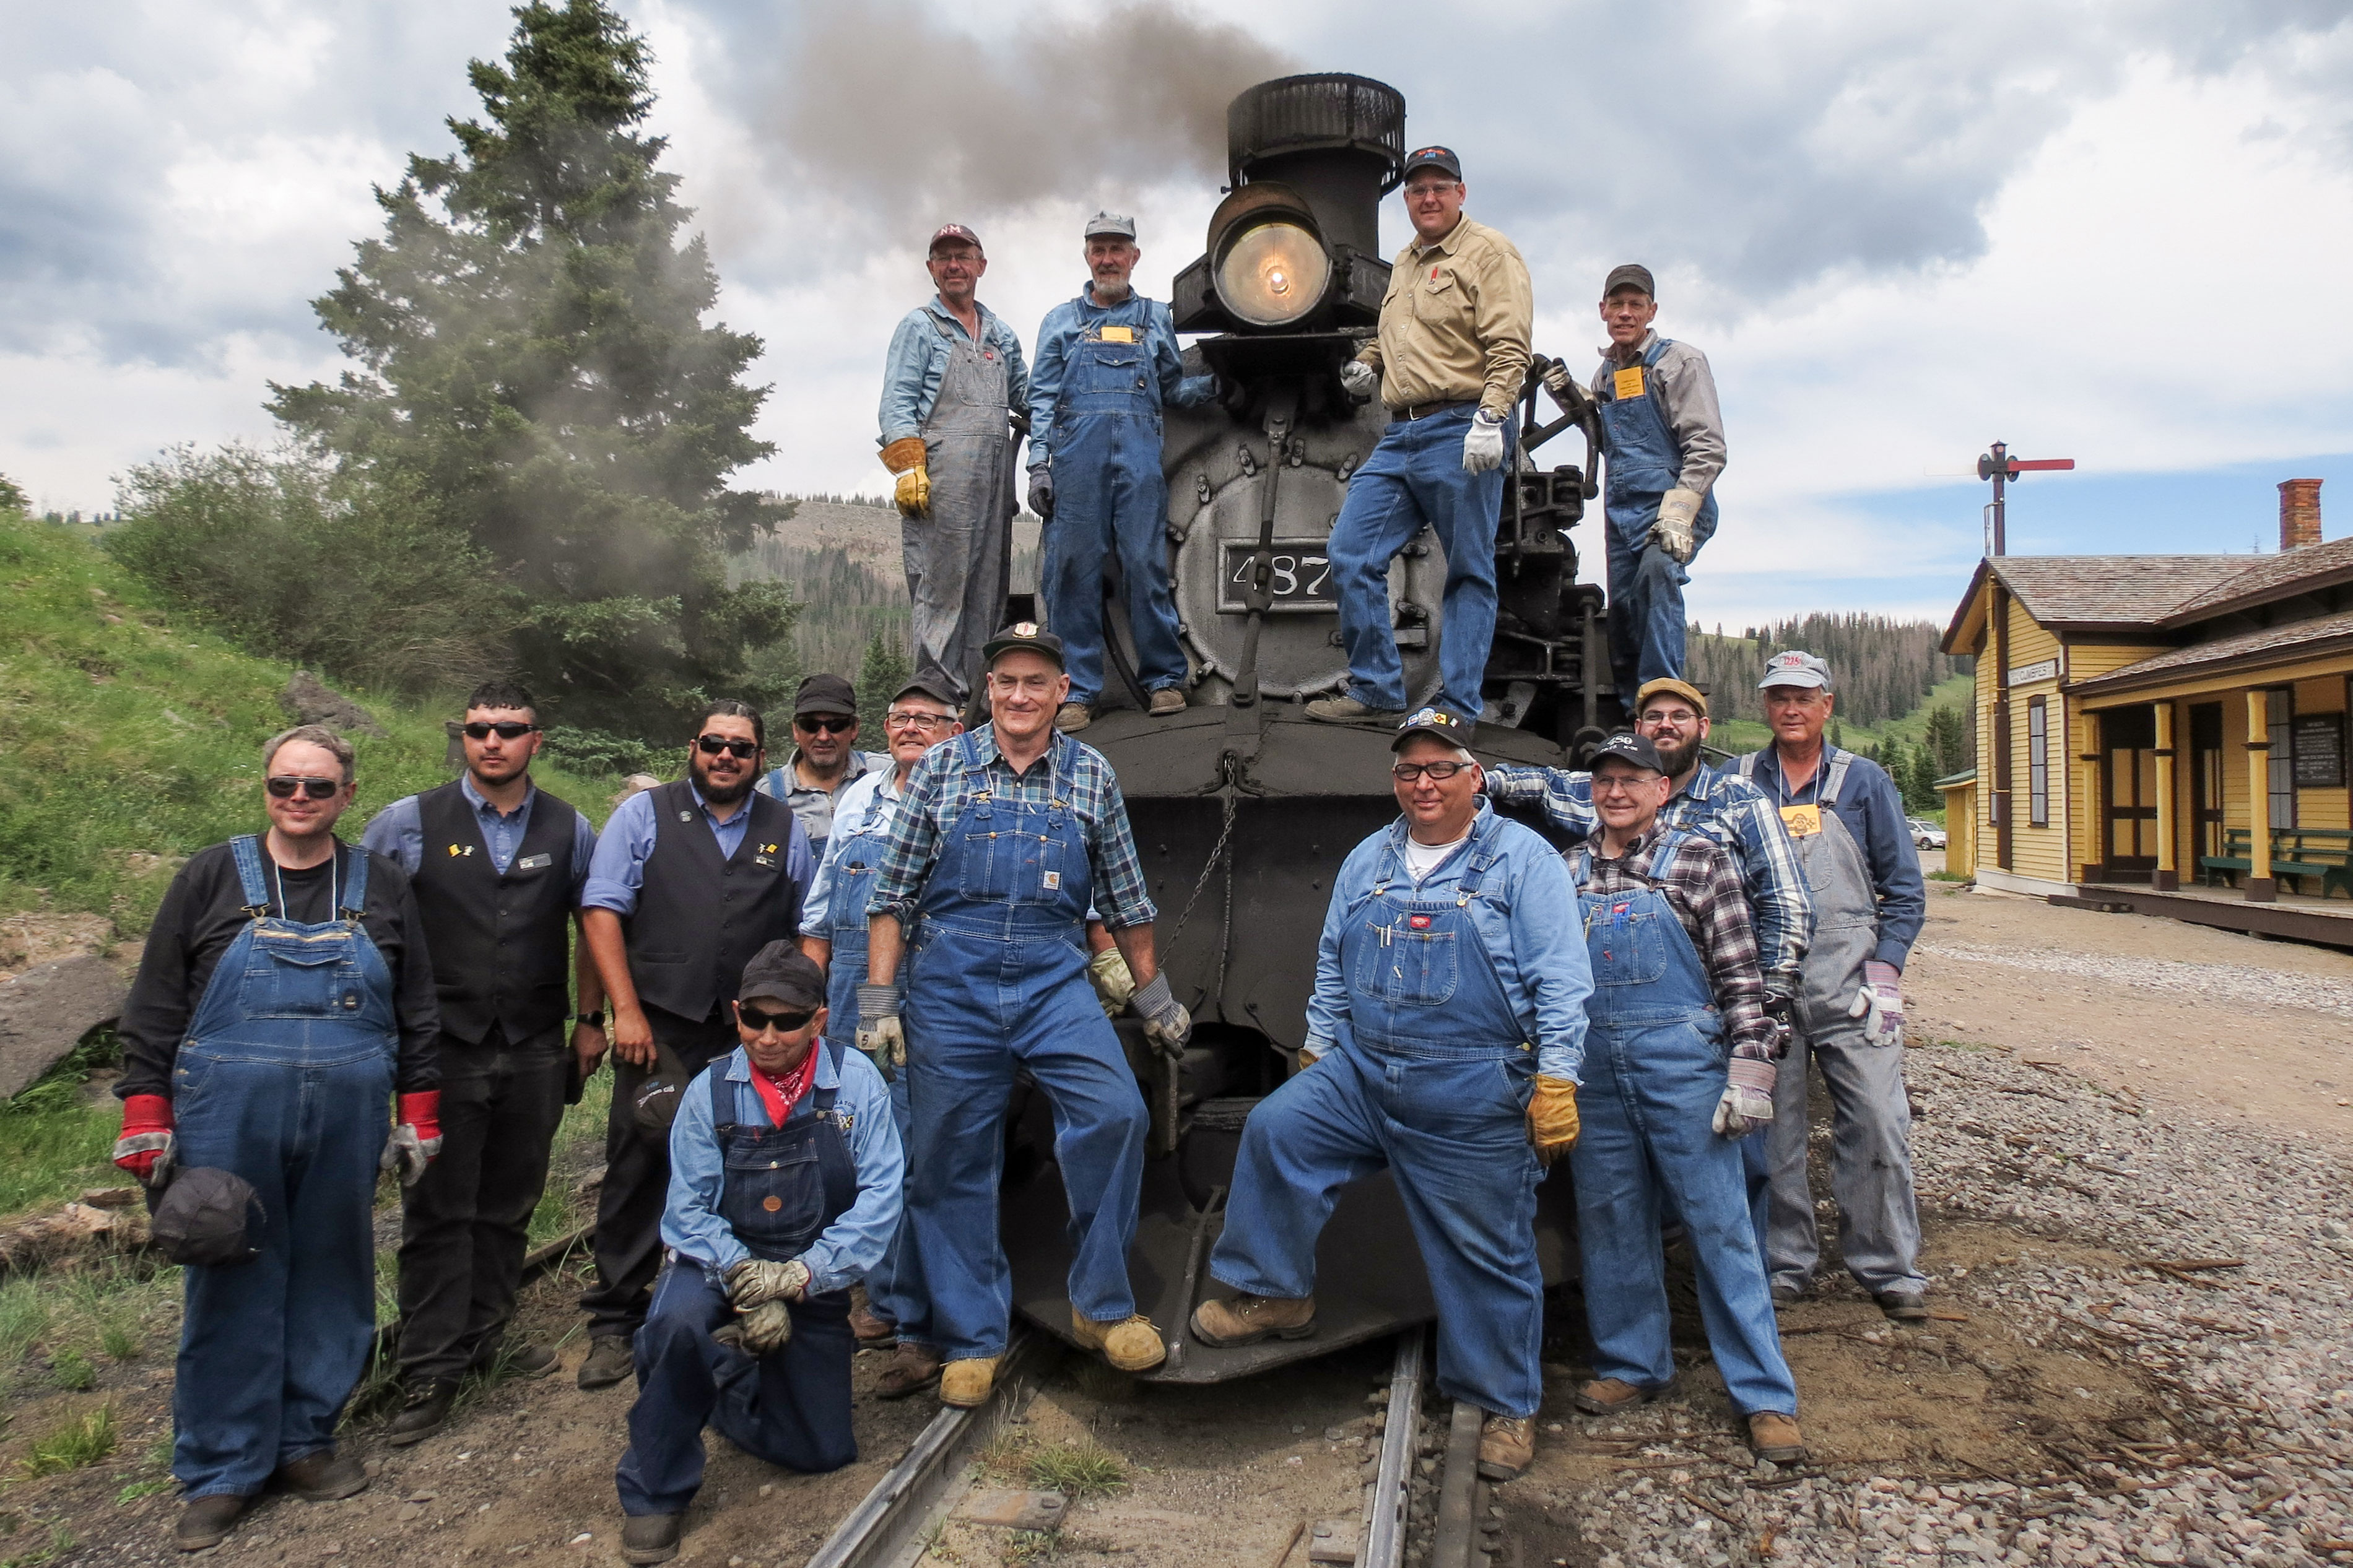 Photo: Train School 4 | Engineer & Fireman Class Poses With Train - JBrundin